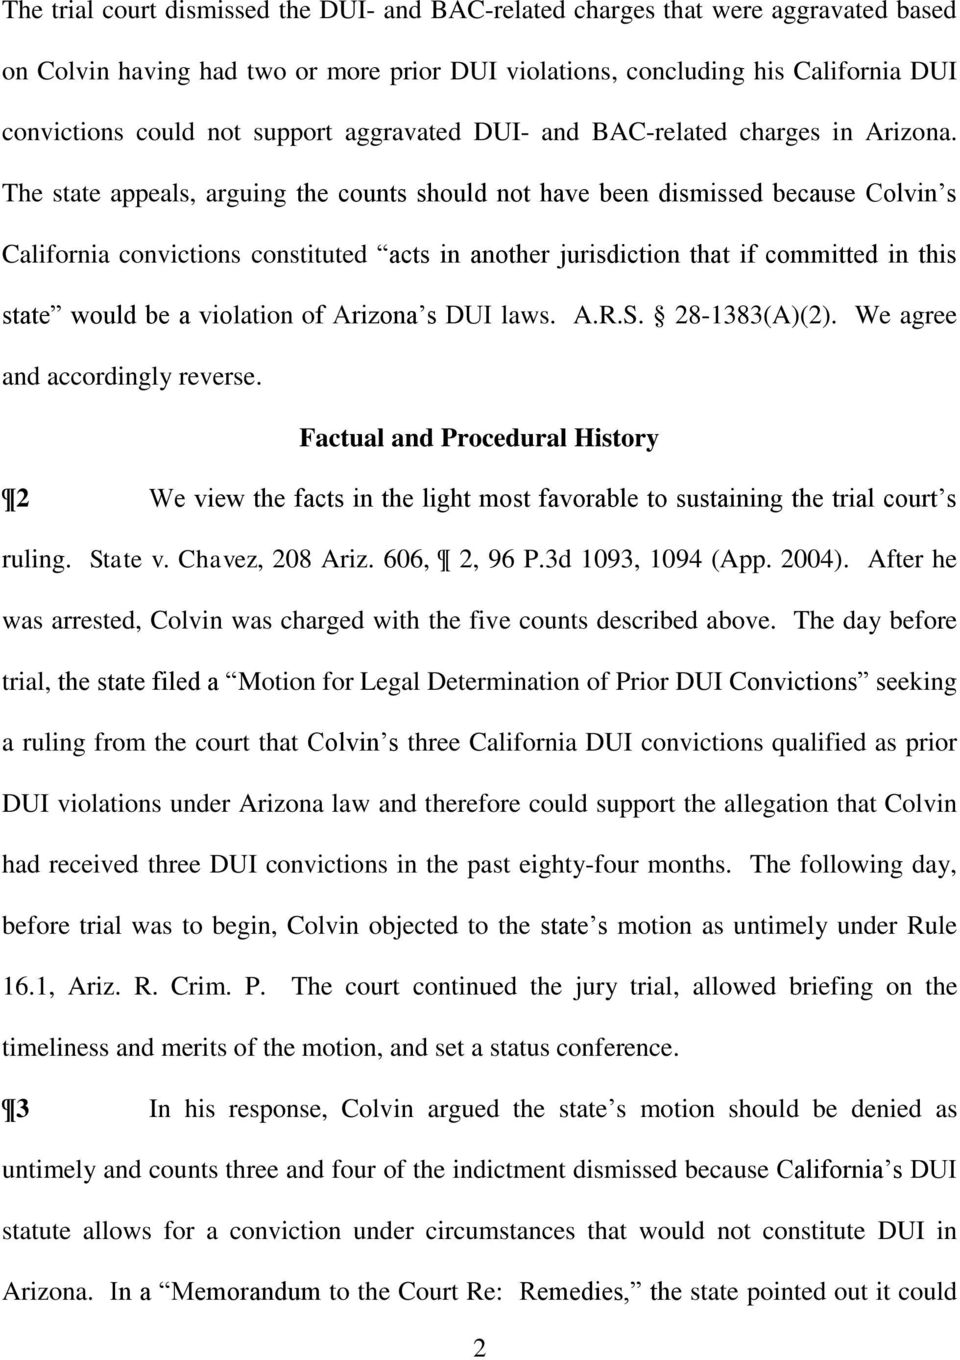 The state appeals, arguing the counts should not have been dismissed because Colvin s California convictions constituted acts in another jurisdiction that if committed in this state would be a